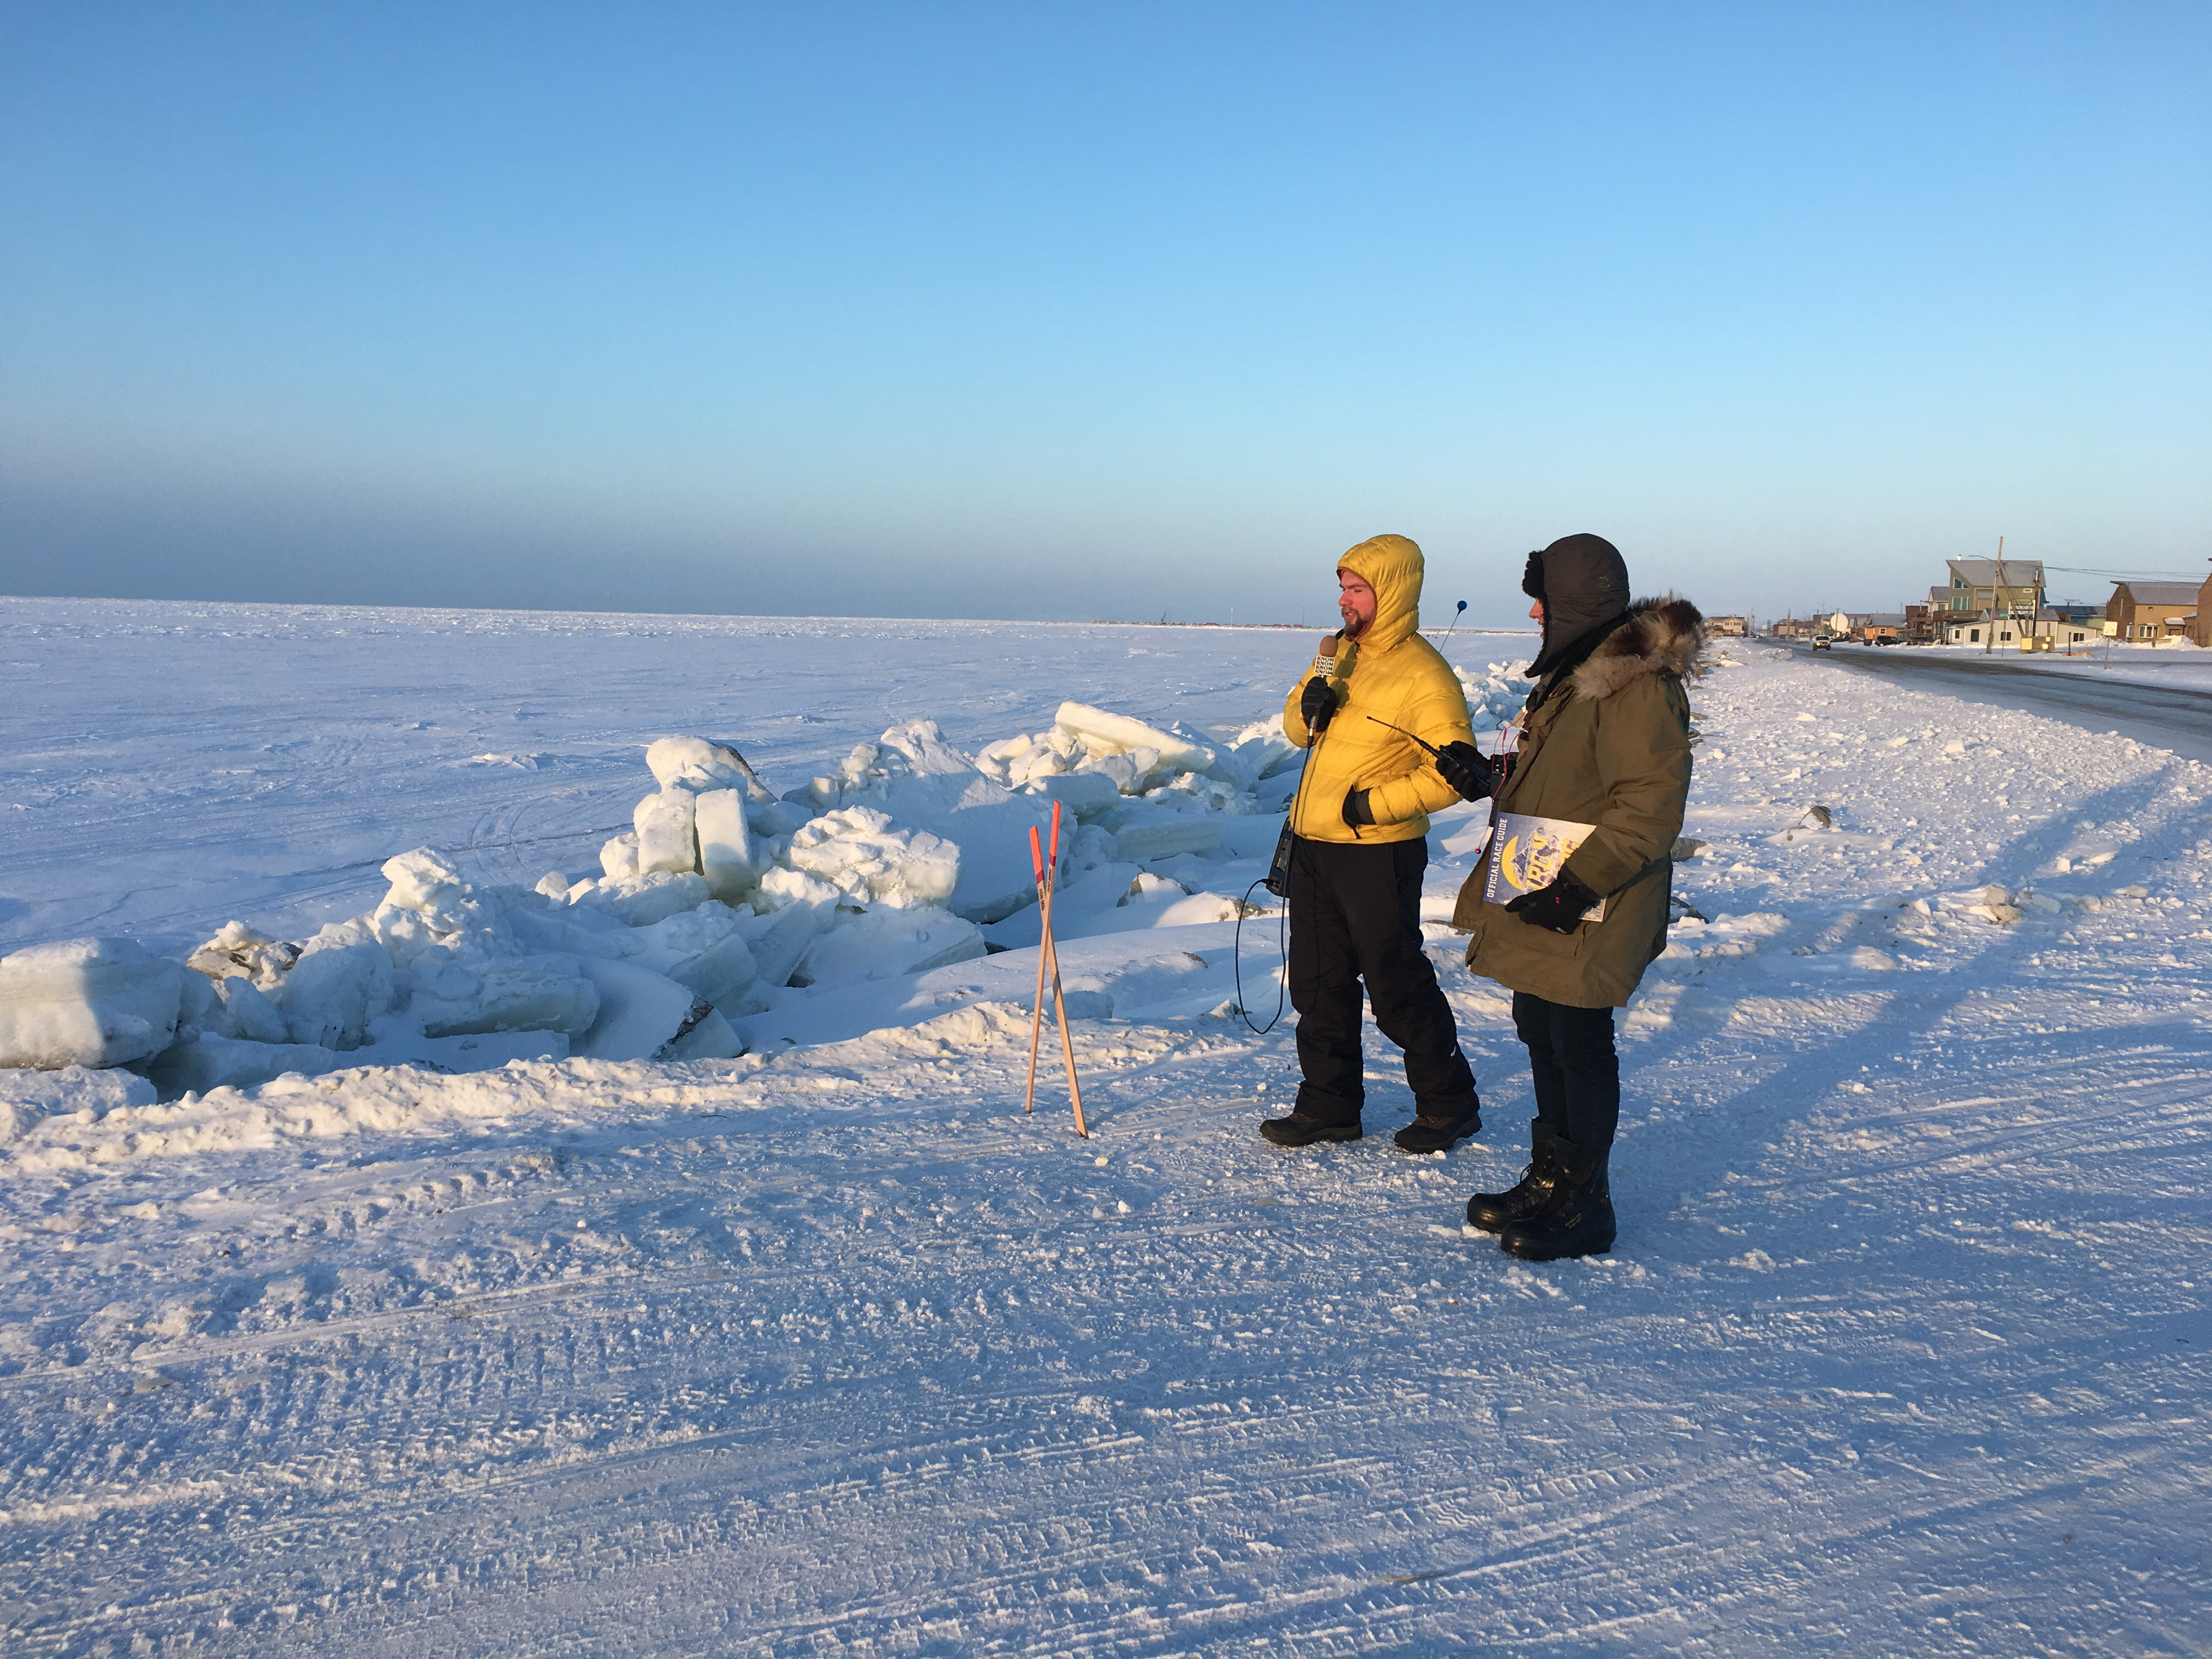 Davis Hovey and fellow reporter Tyler Stup await the arrival of the Iron Dog Snowmachine racers on the frozen Bering Sea.